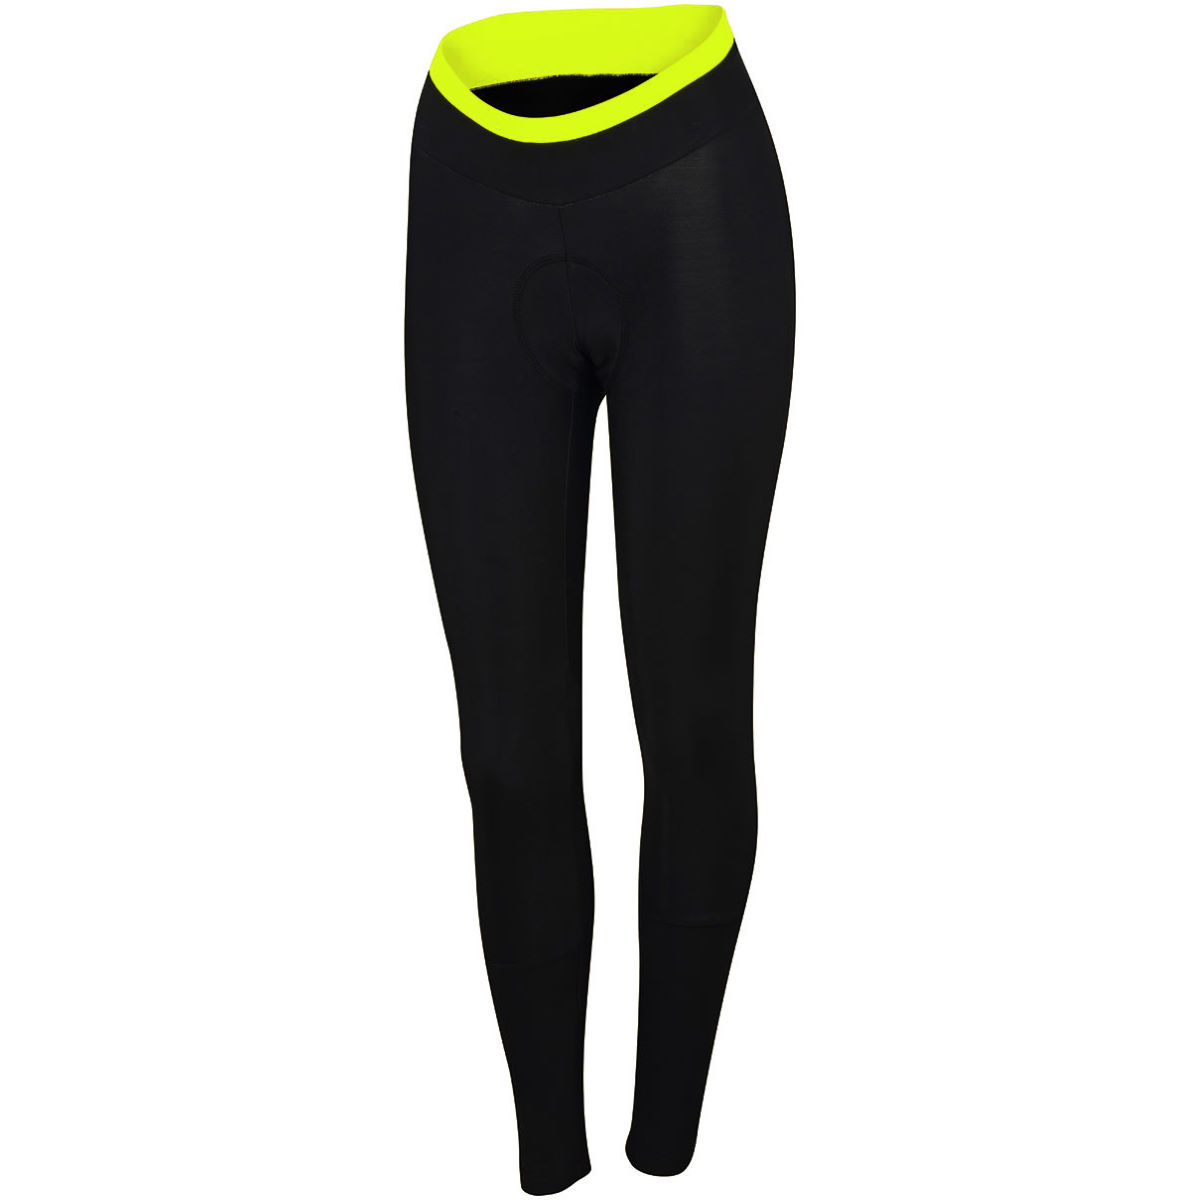 Cuissard long Femme Sportful Luna Thermal - XL Black/Yellow Fluo